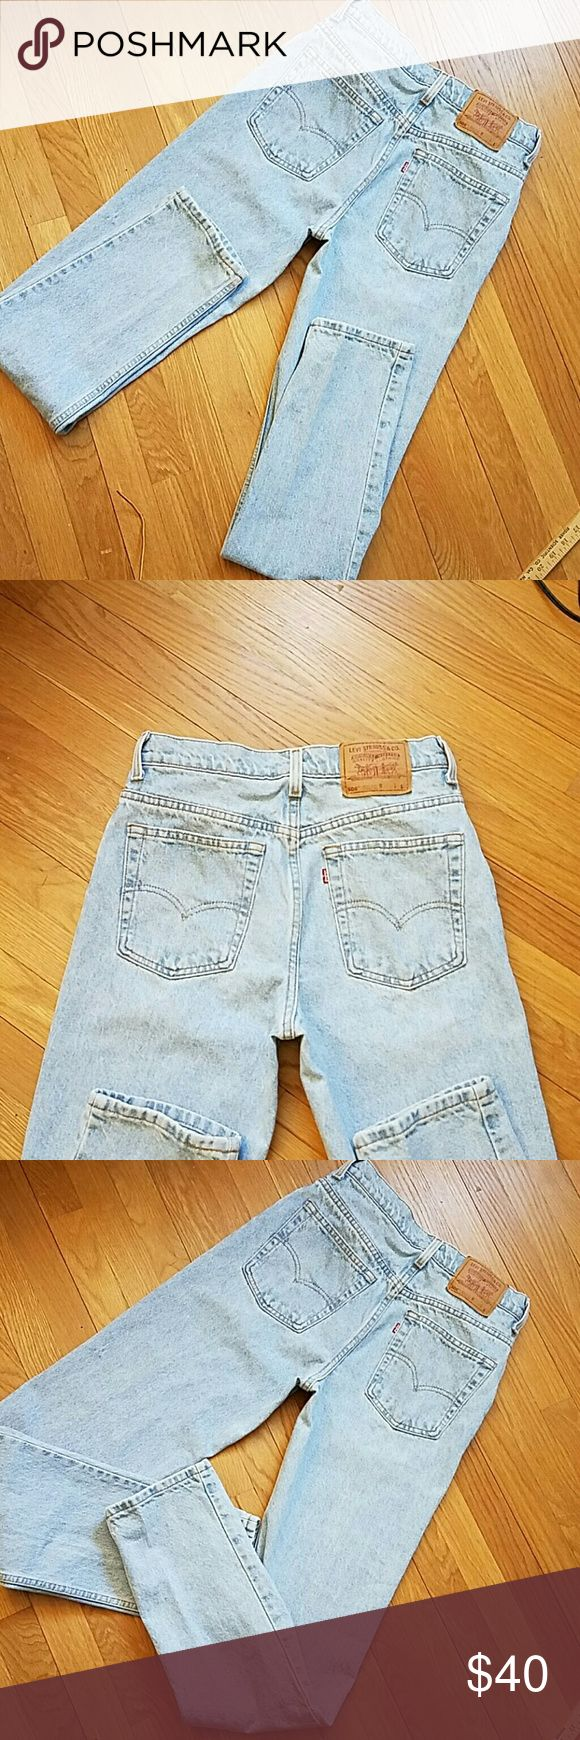 """Levi's 506 vintage high-waisted  jeans 11 """" rise, labeled 10 long, waist hand measured at 28"""" inseam 33"""" , beautiful light blue denim, 100 % cotton, made in the USA, rare find! Levi's Jeans"""